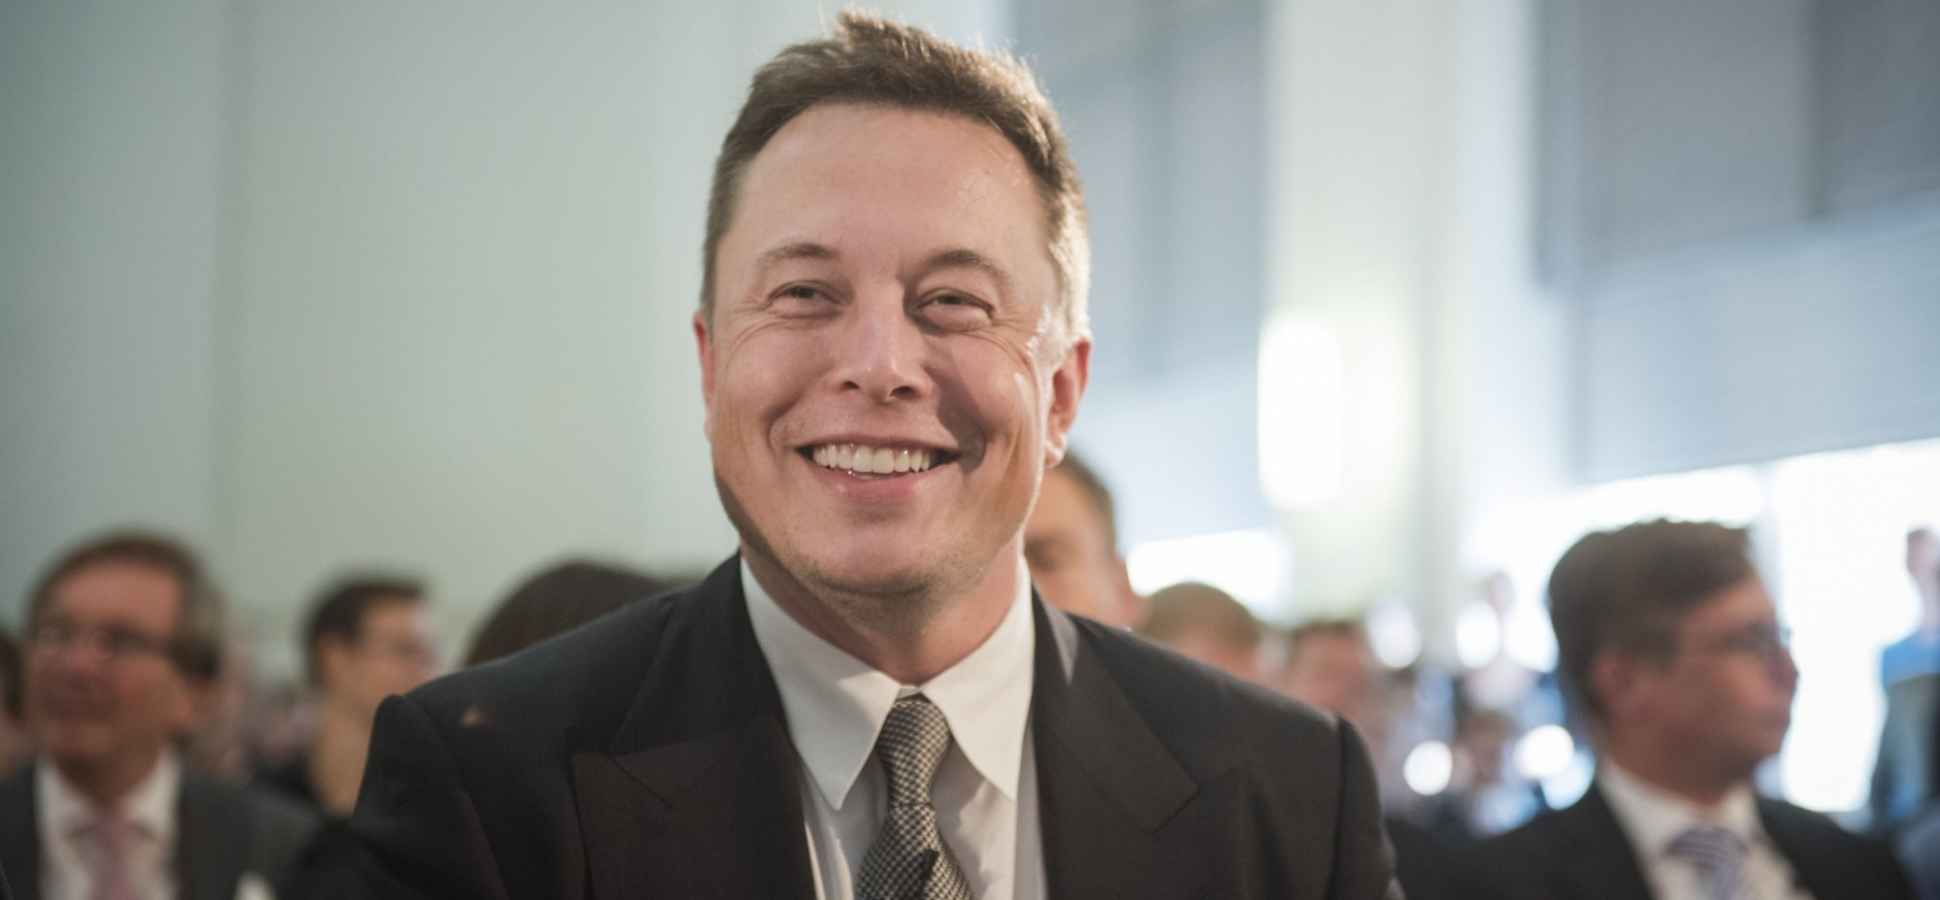 Elon Musk Shows How to Be a Great Boss in 1 Simple Letter